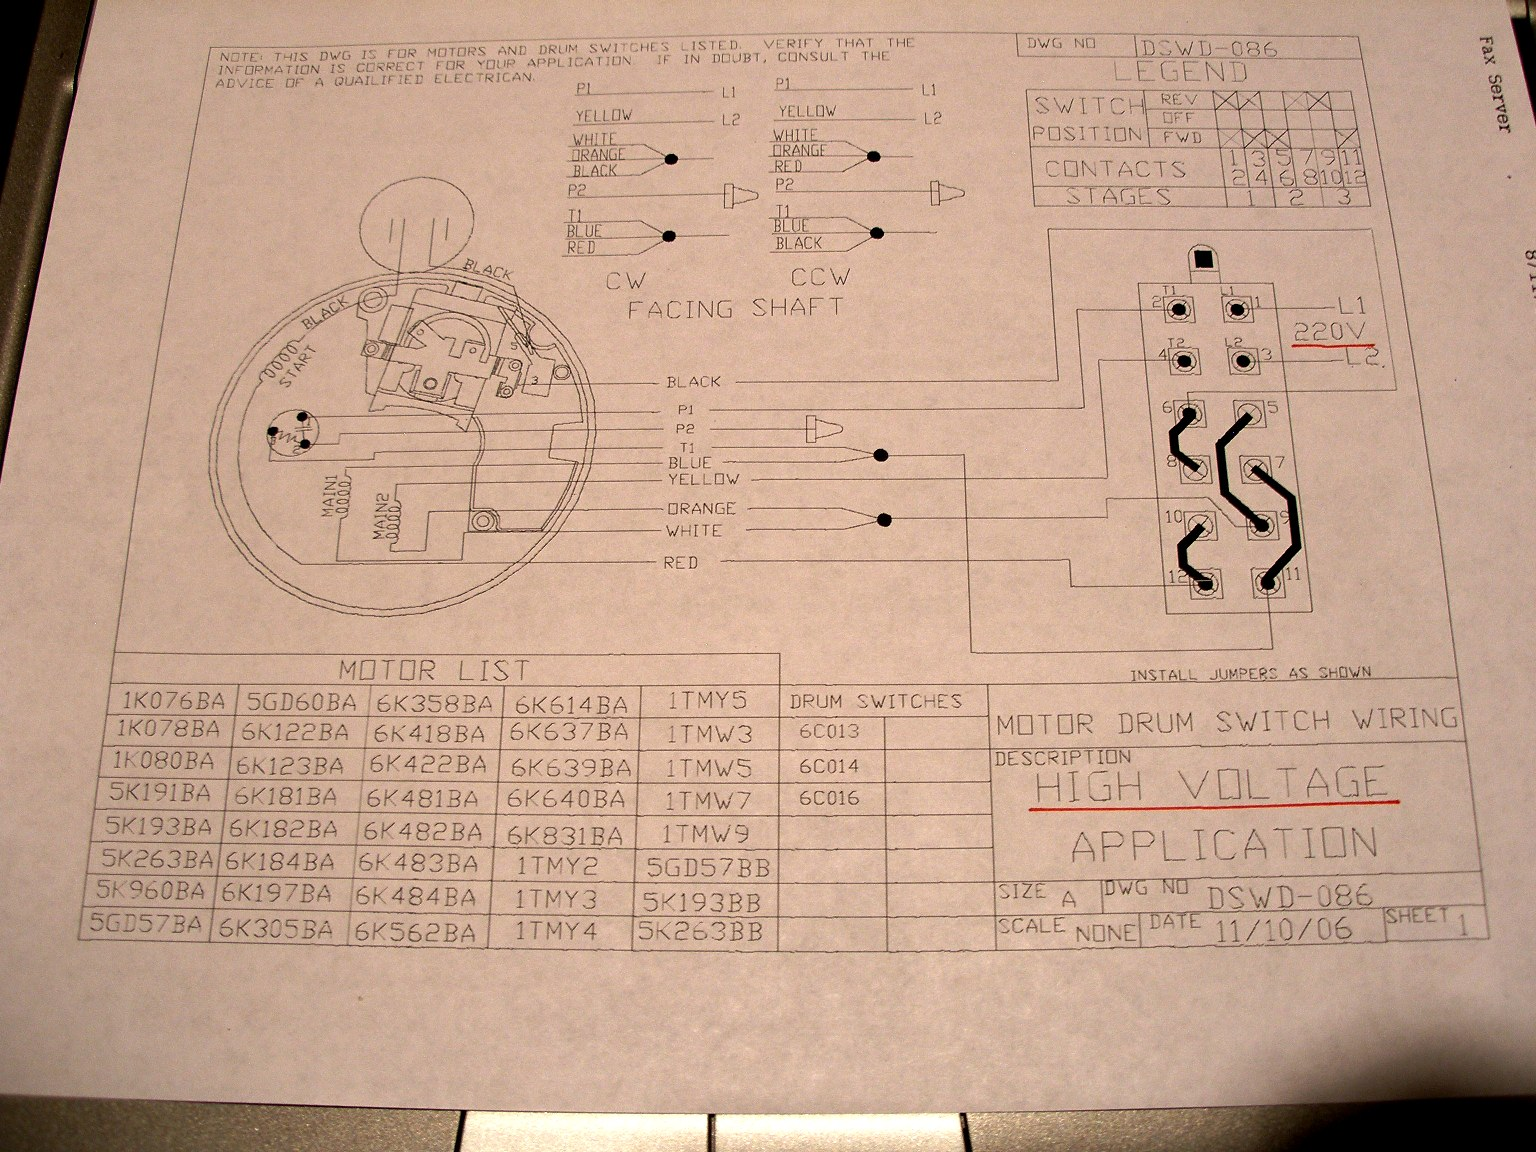 grainger wiring diagrams the motor on my boat lift quit. it was a ao motor, open ... cub cadet wiring diagrams wiring diagrams